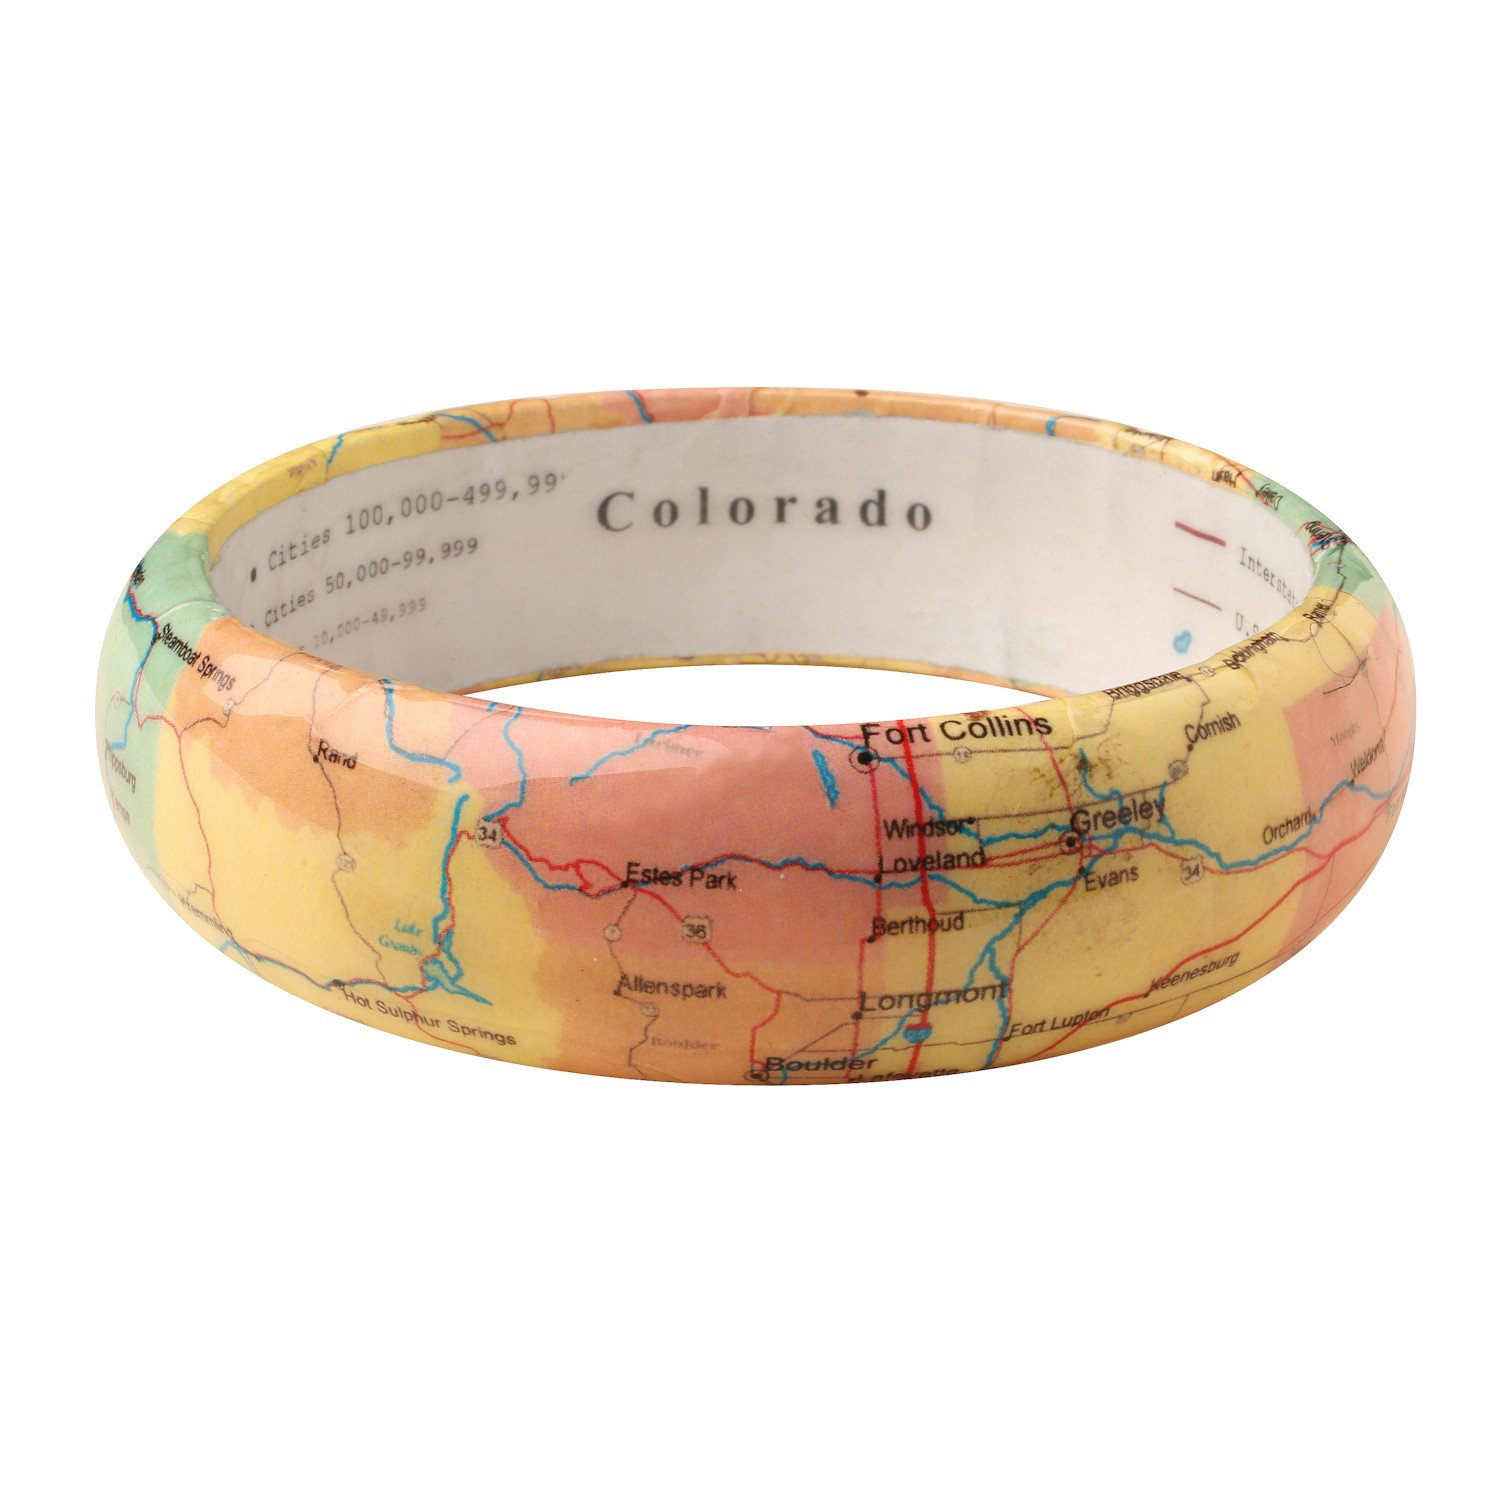 FLORIANA Women's State Map Bangle Bracelet - Clear Resin over Paper Map - Colorado